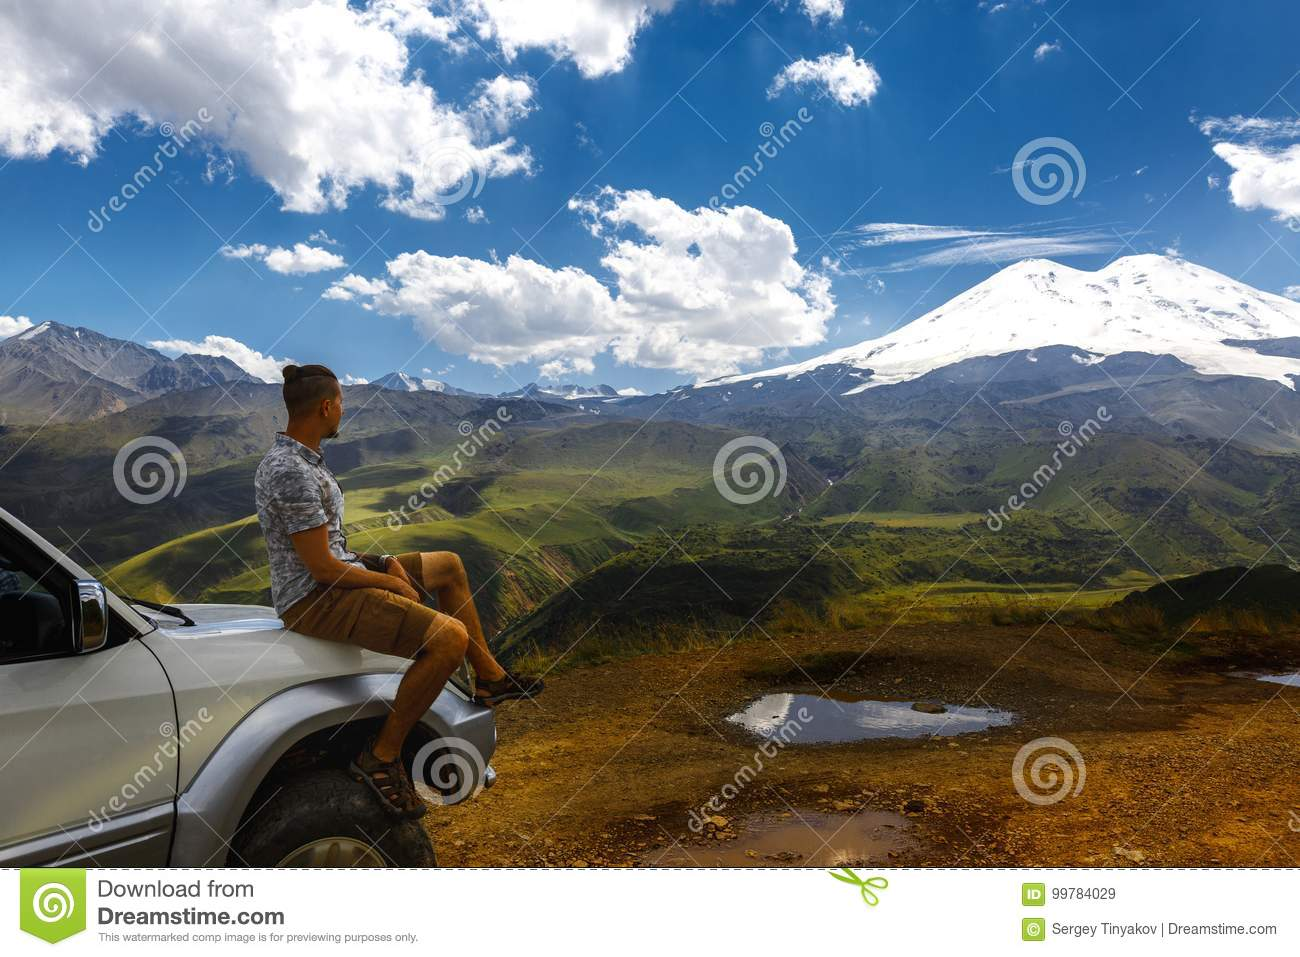 Young Traveler Man Sits On Car And Enjoys View Of Mountains In Summer. Elbrus Region, North Caucasus, Russia